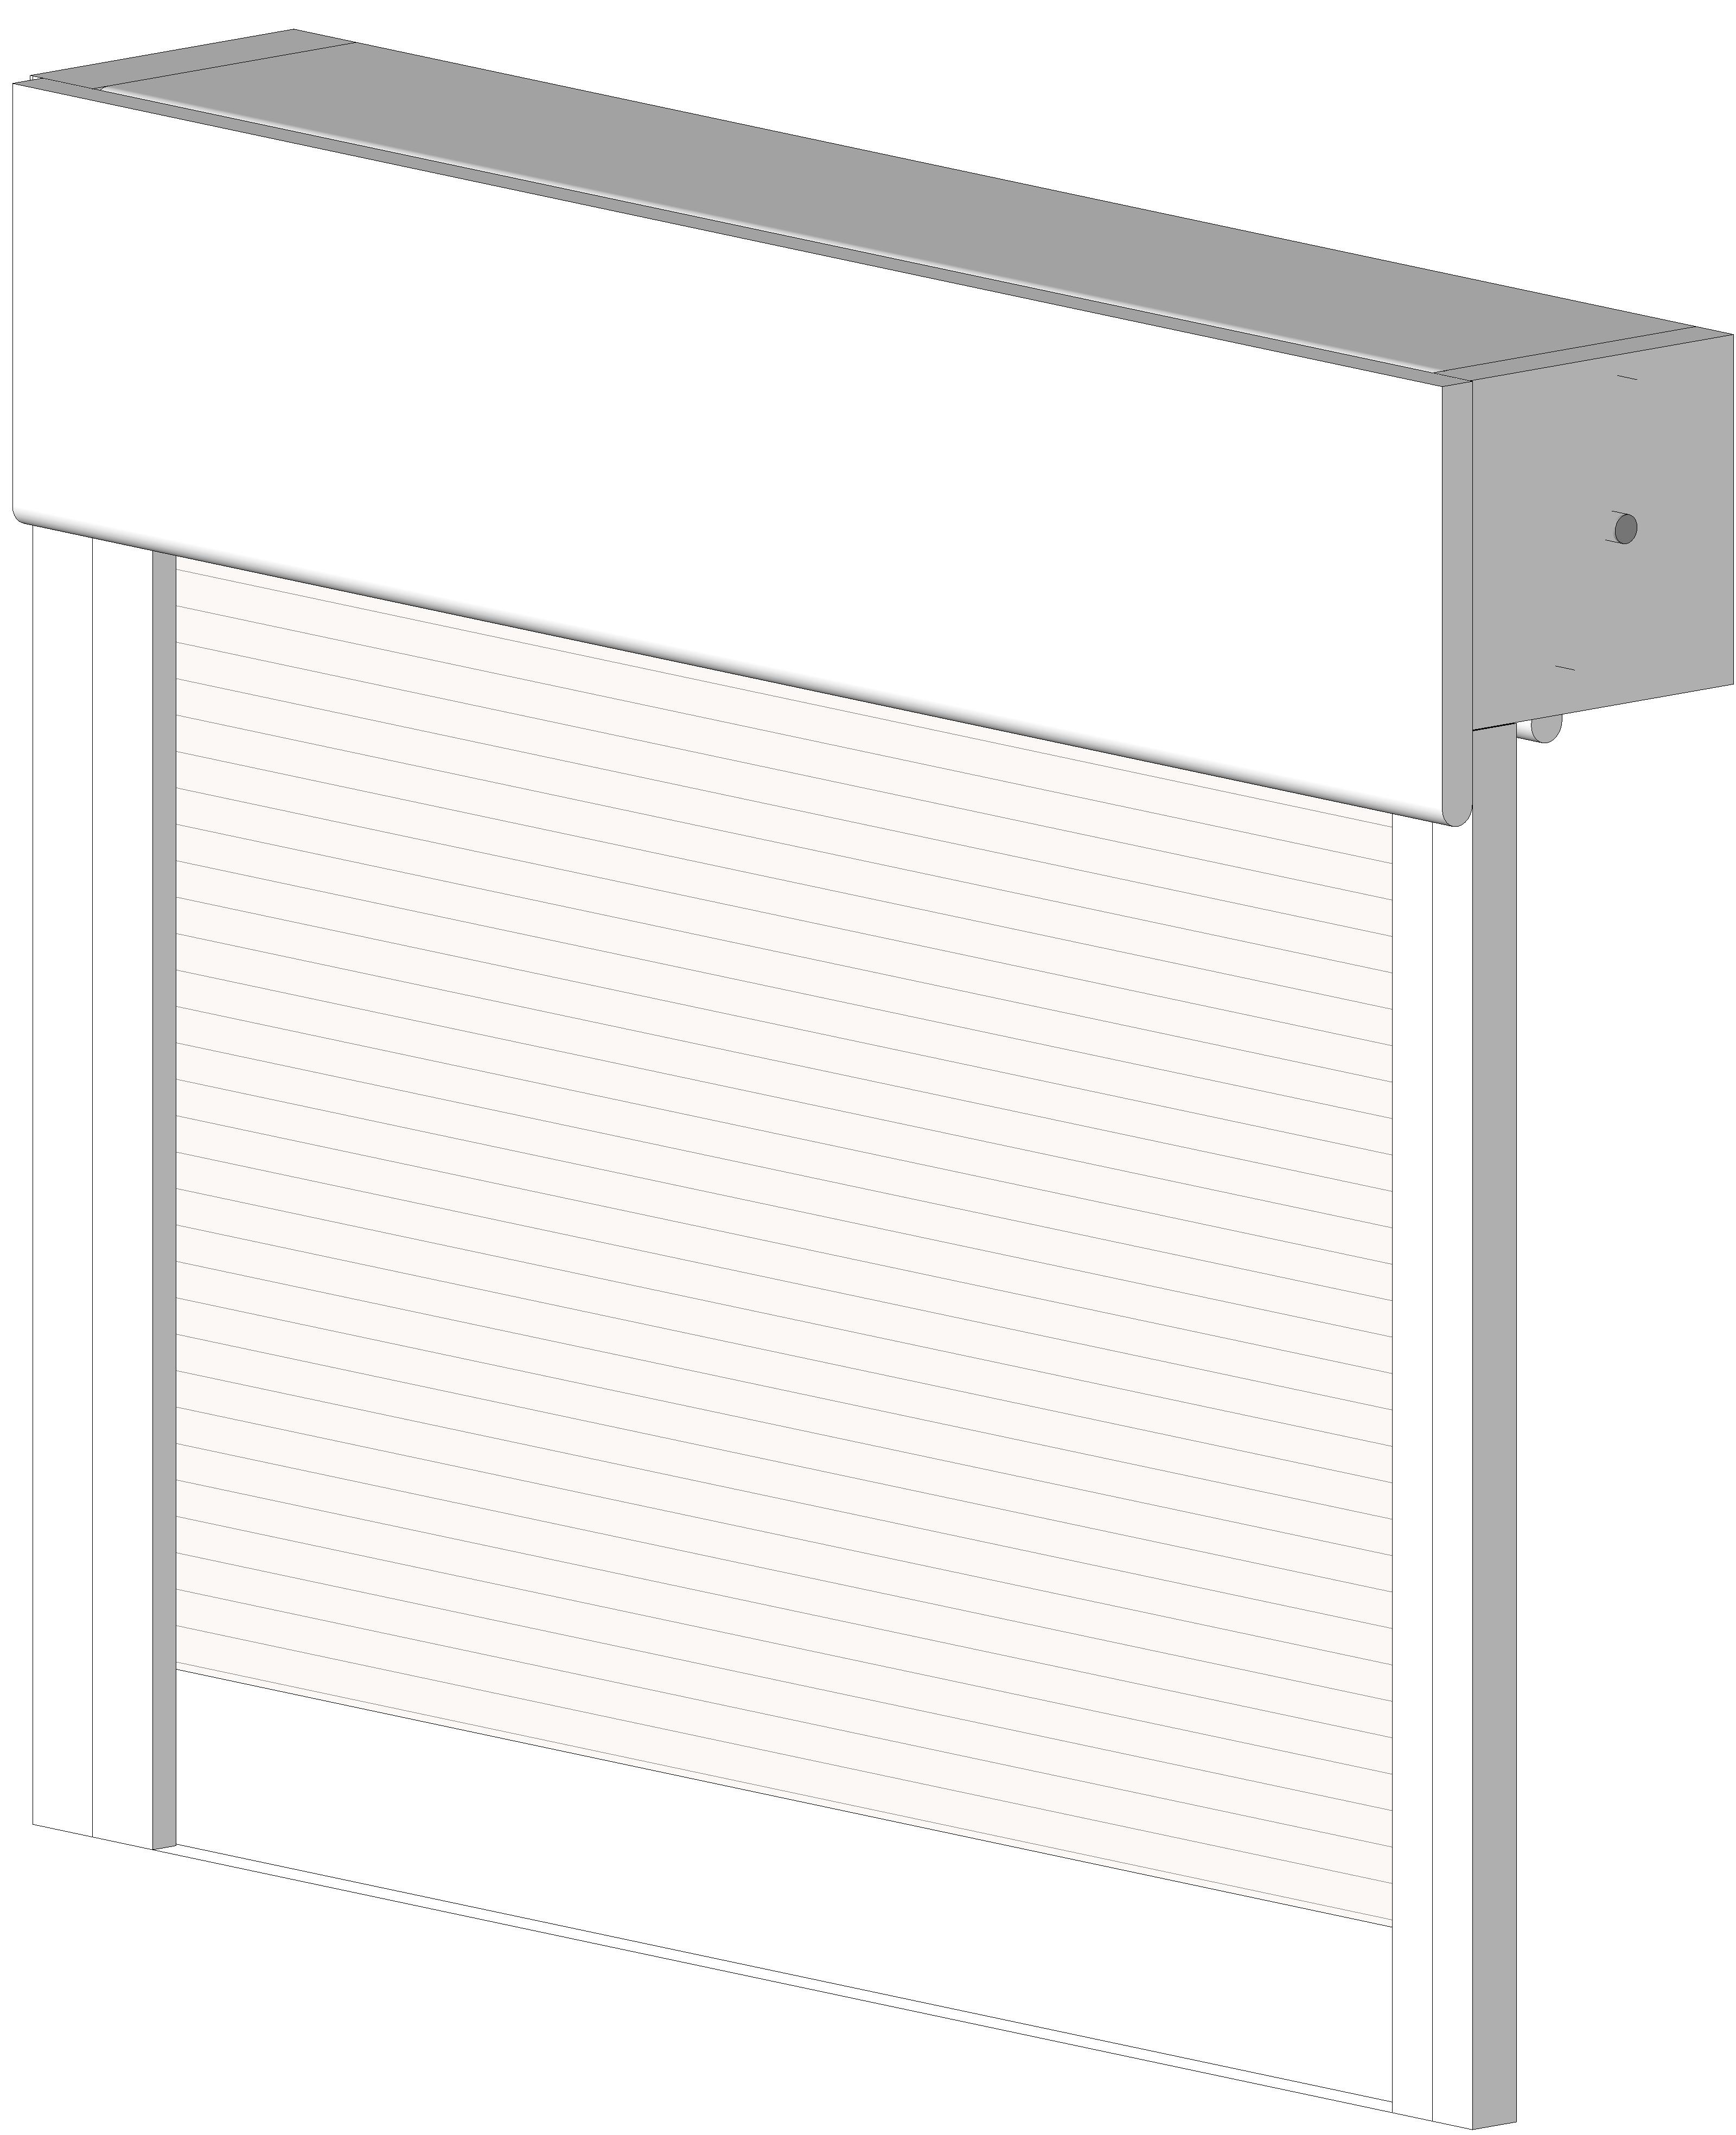 Raynor Coiling Doors And Grilles Bim Objects Families